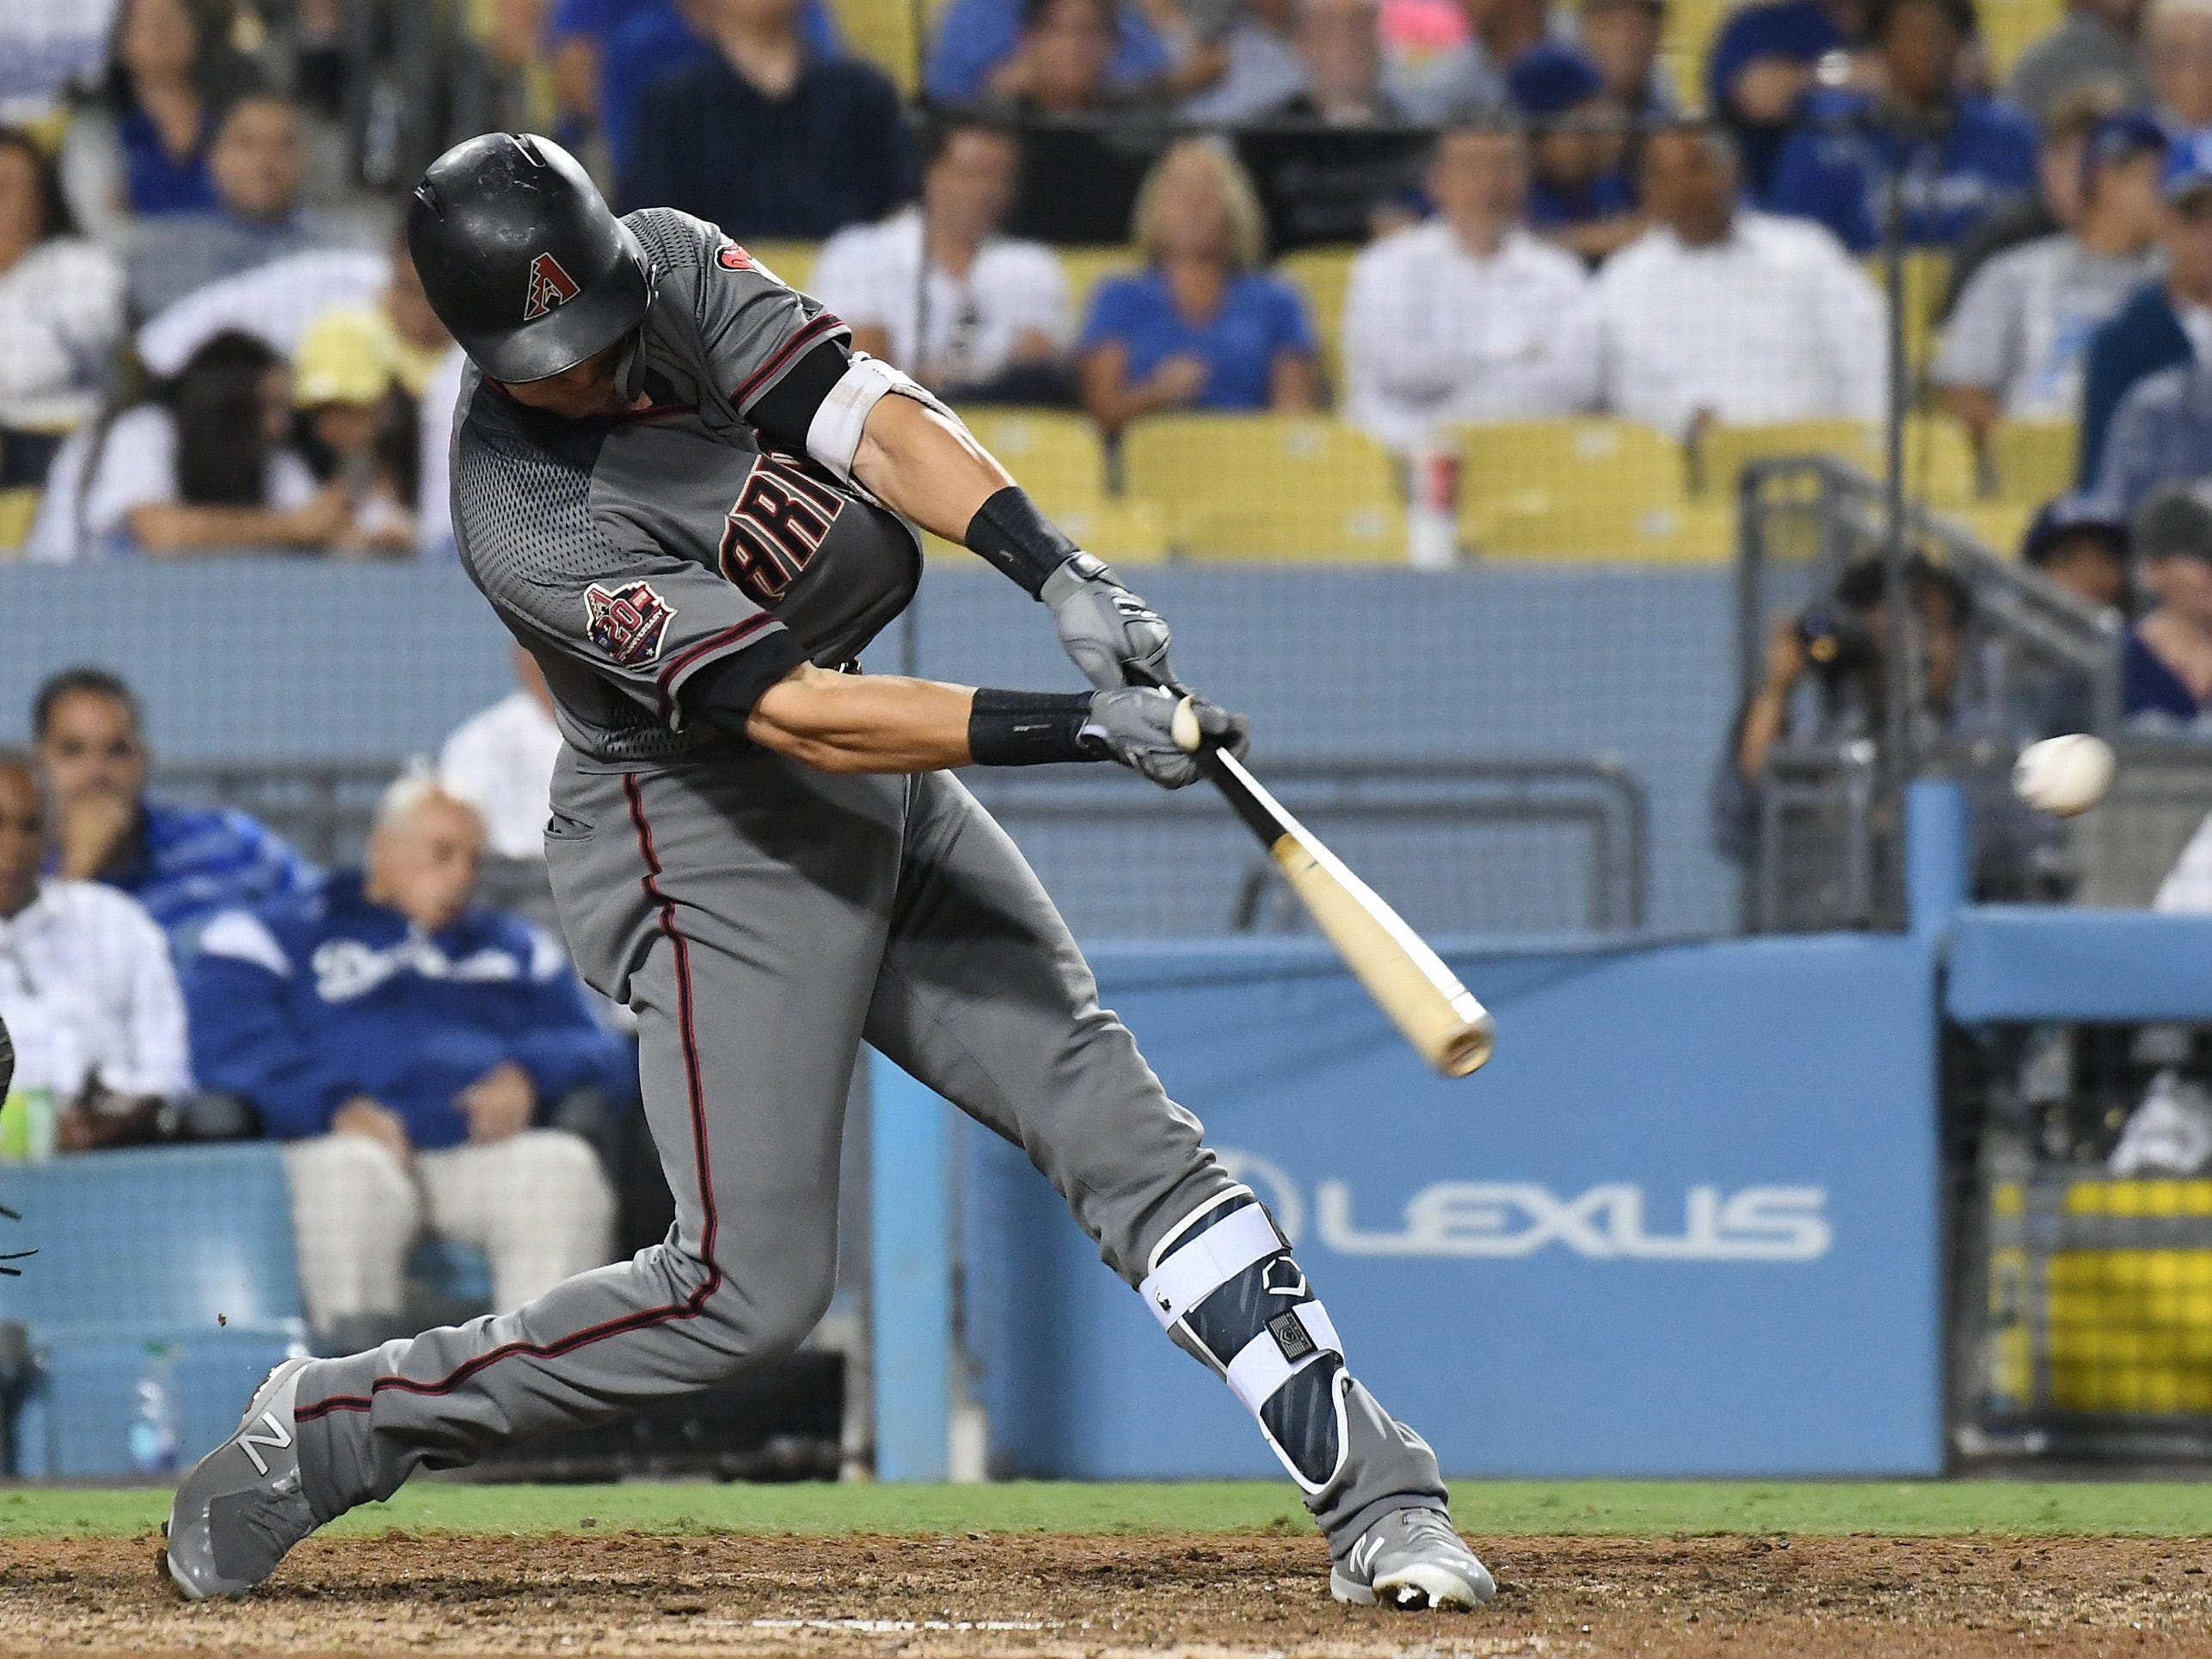 Aug 30, 2018; Los Angeles, CA, USA; Arizona Diamondbacks shortstop Nick Ahmed (13) hits a single against the Los Angeles Dodgers in the eighth inning at Dodger Stadium. Mandatory Credit: Richard Mackson-USA TODAY Sports